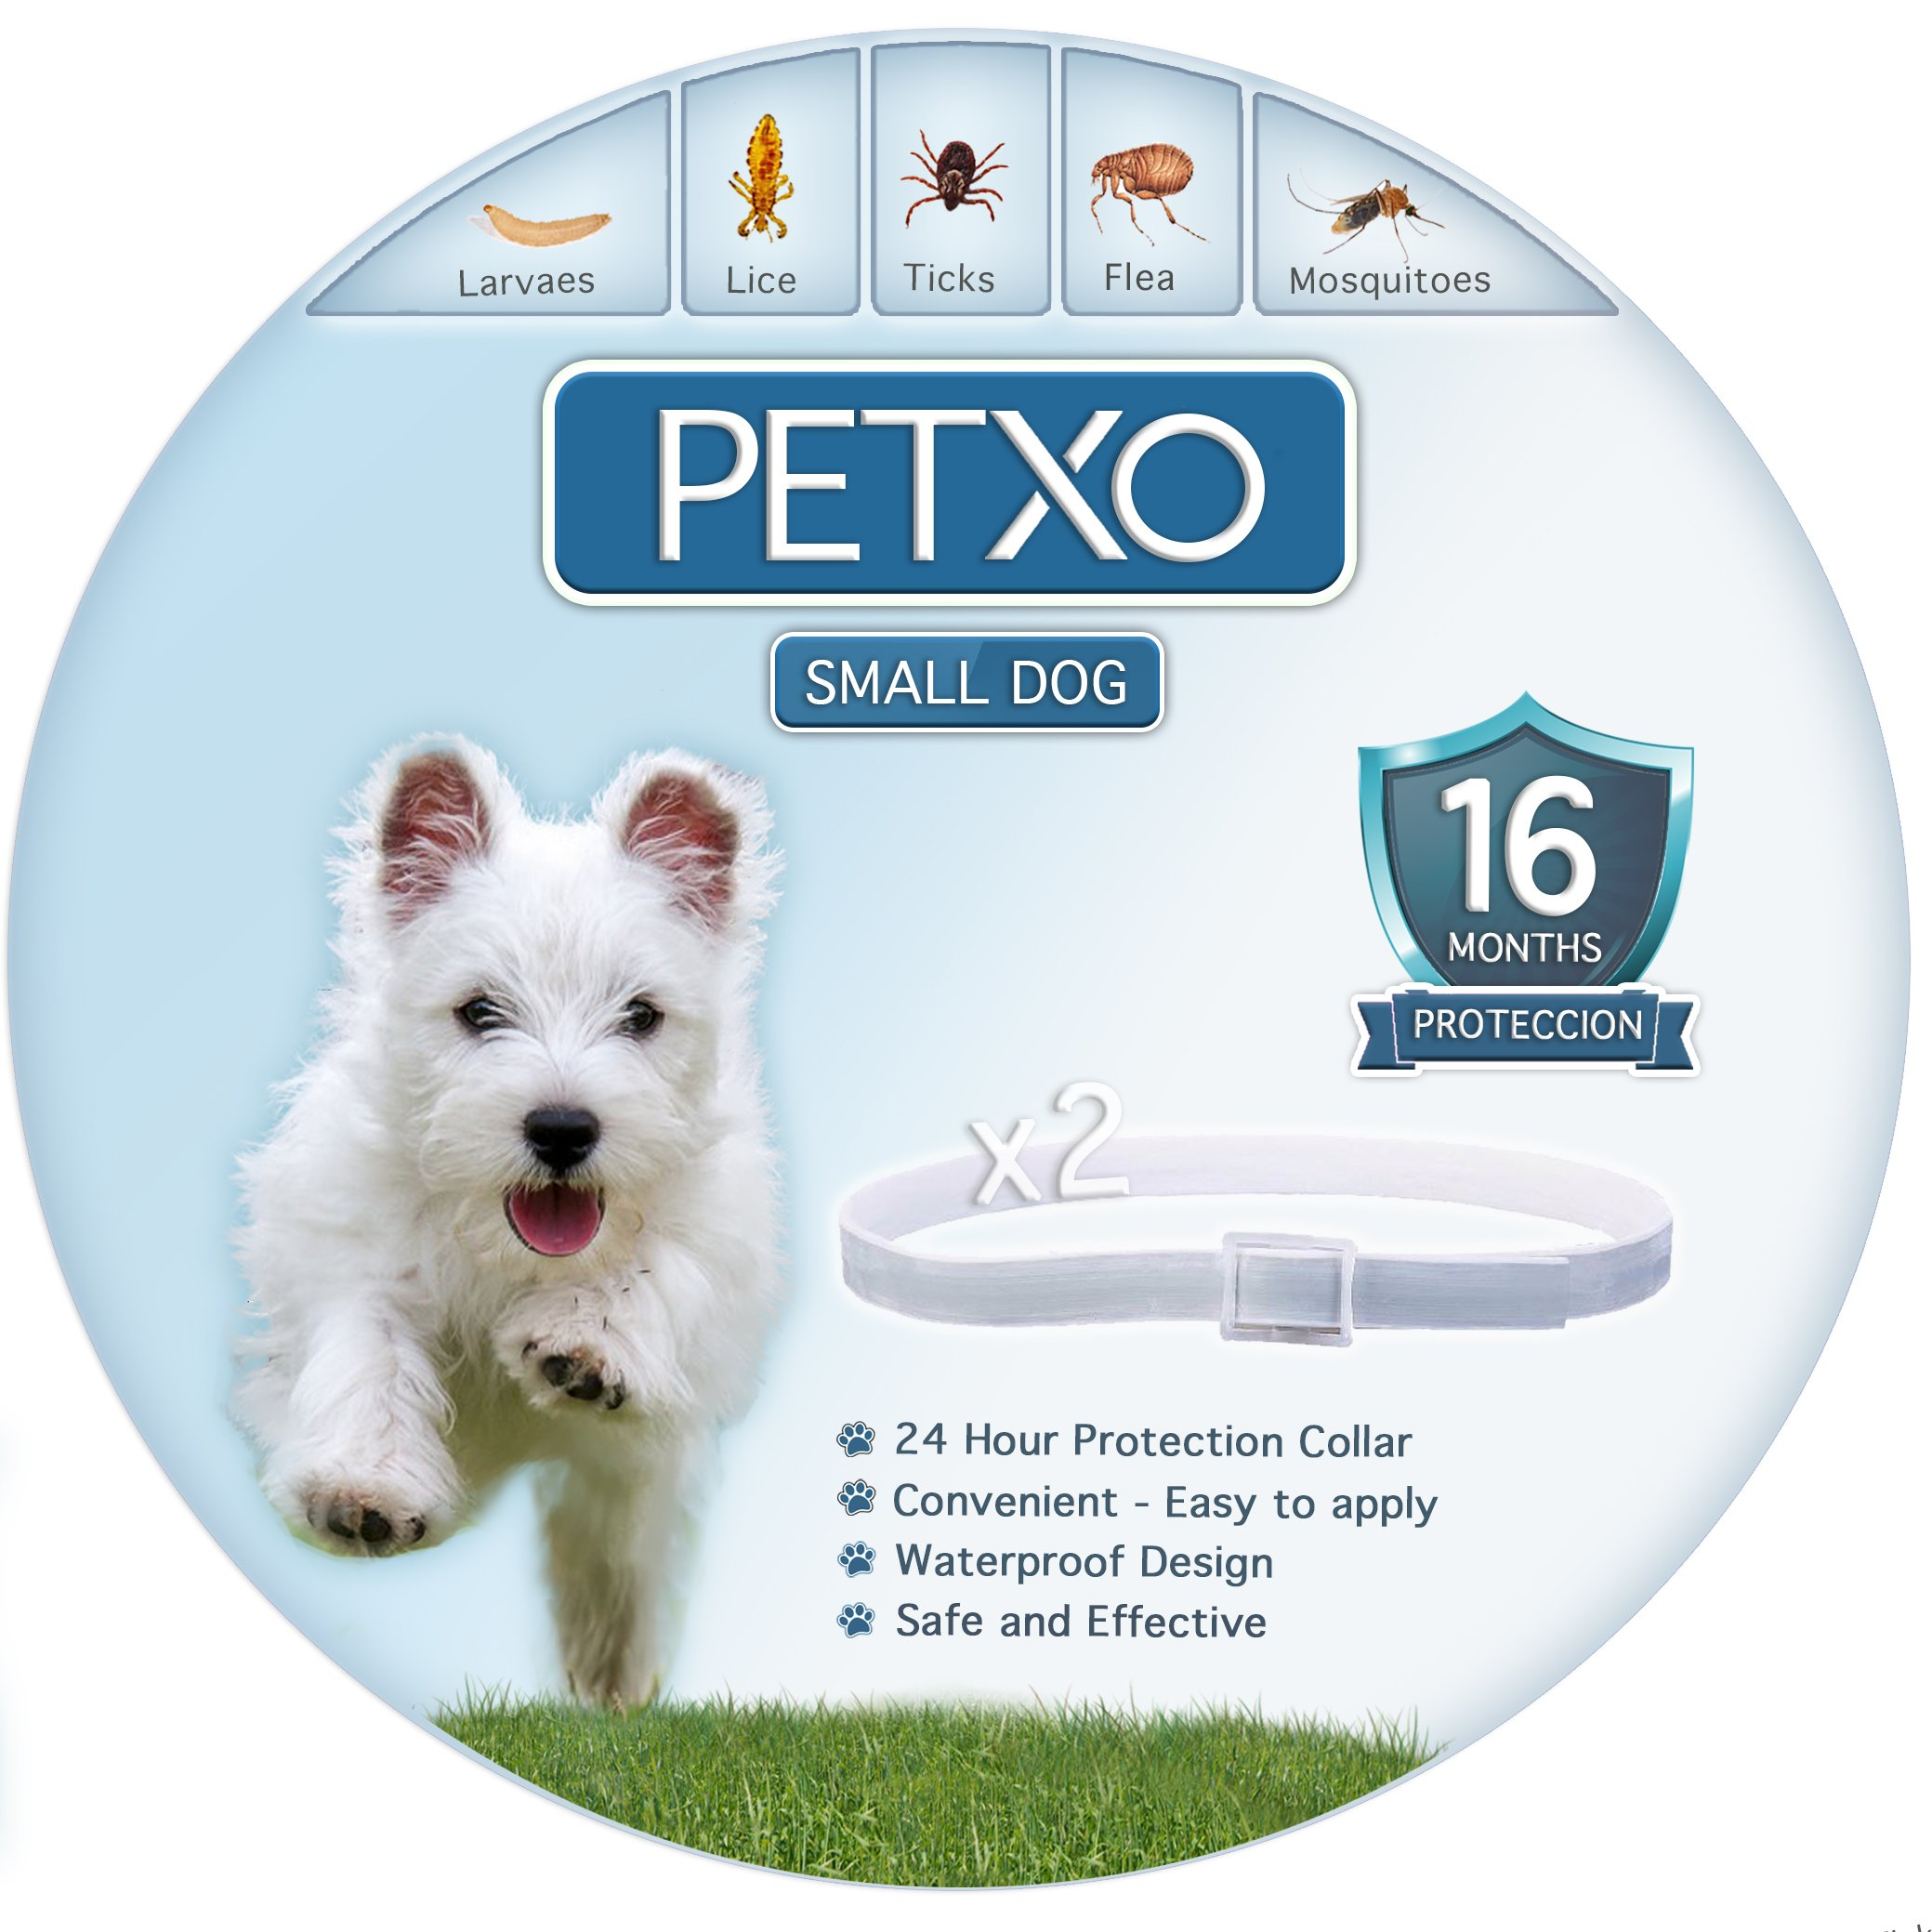 PETXO Dog Tick And Flea Collar. Fits Small to Medium Dogs. Pest Solution with Natural Oils.Waterproof and Adjustable 13Inches. Best Best Herbal Pest Prevention.